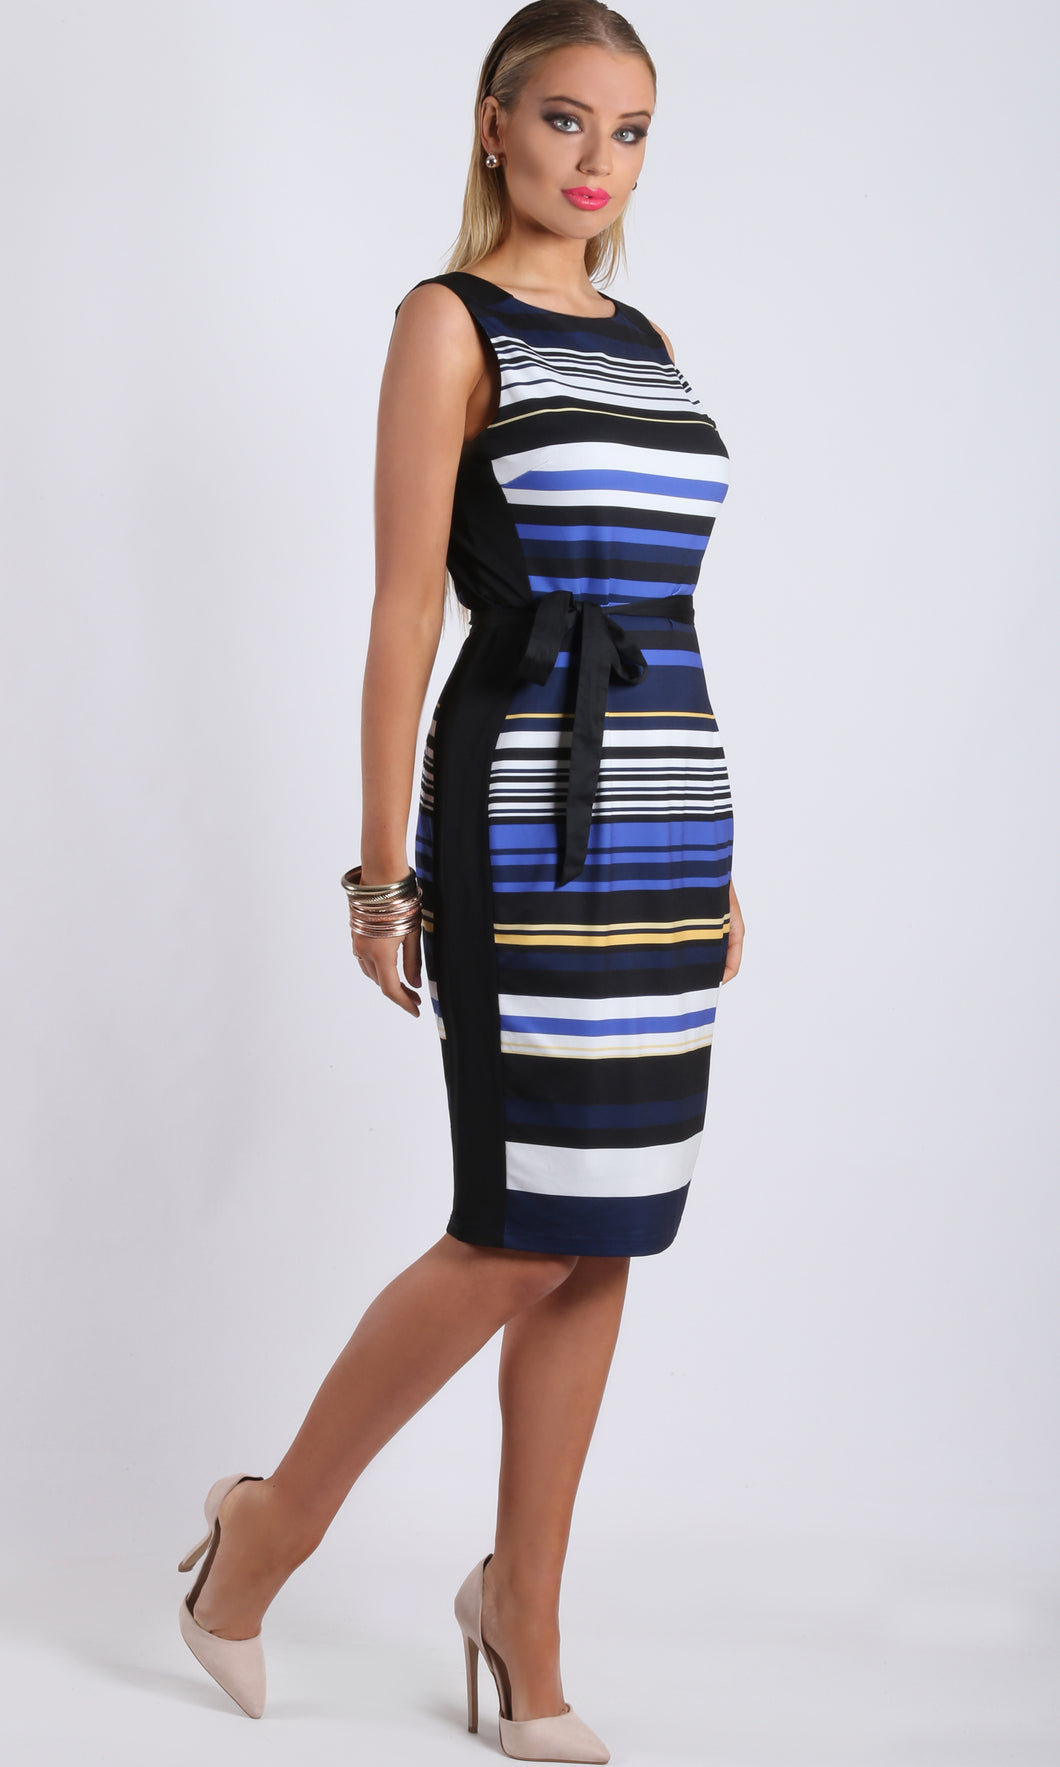 VS7147TB Stripes with Black Side Panel Dress (Pack)